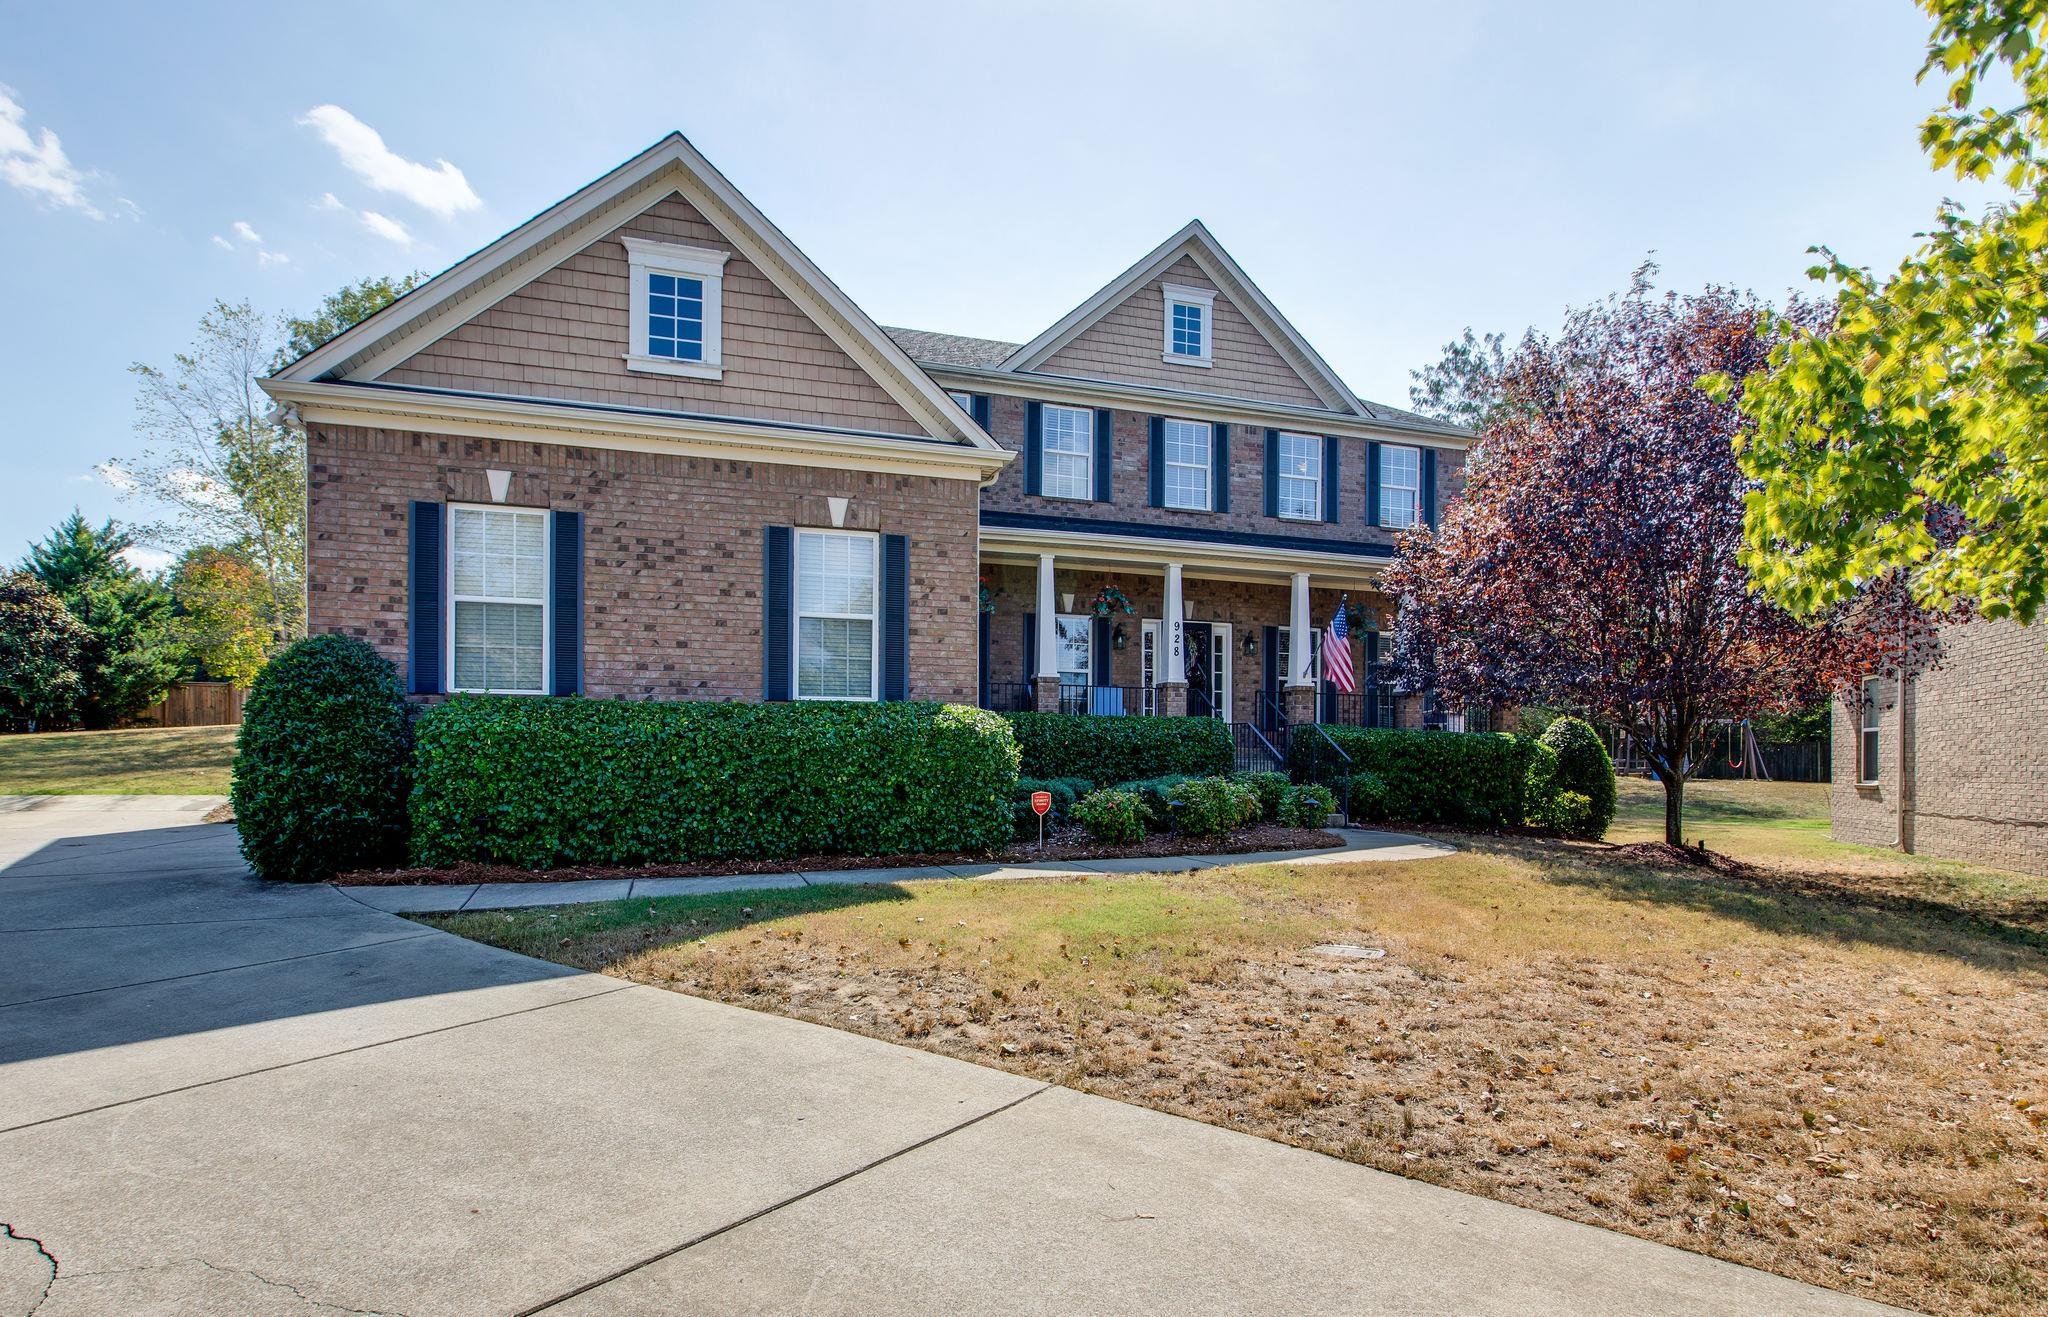 928 Falling Water Ct, Bellevue in Davidson County County, TN 37221 Home for Sale